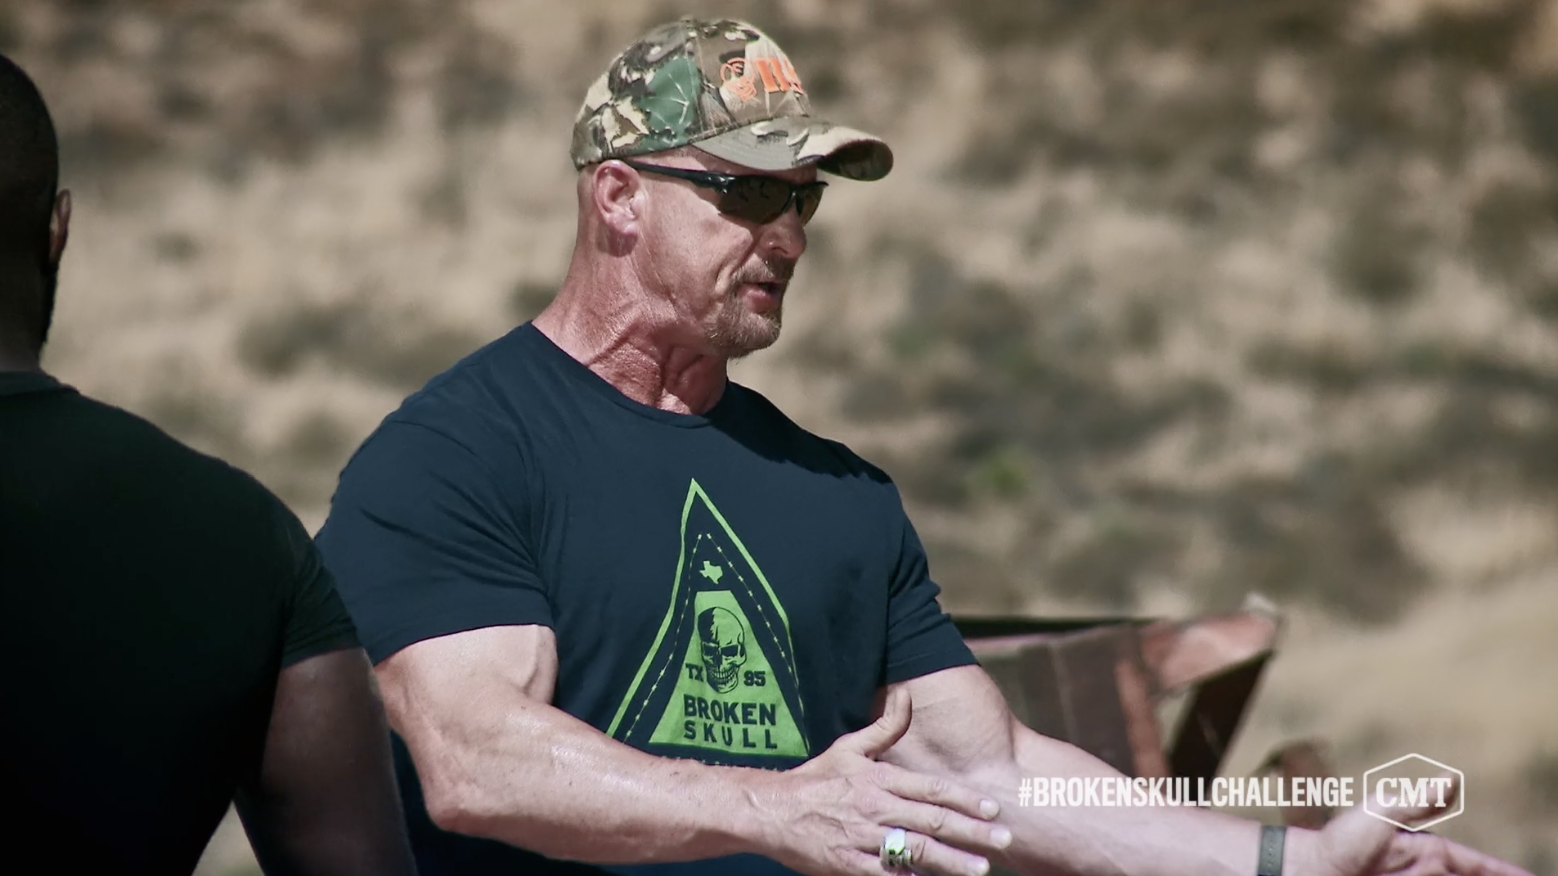 Broken Skull Challenge Season 5 Episode 5 Recap